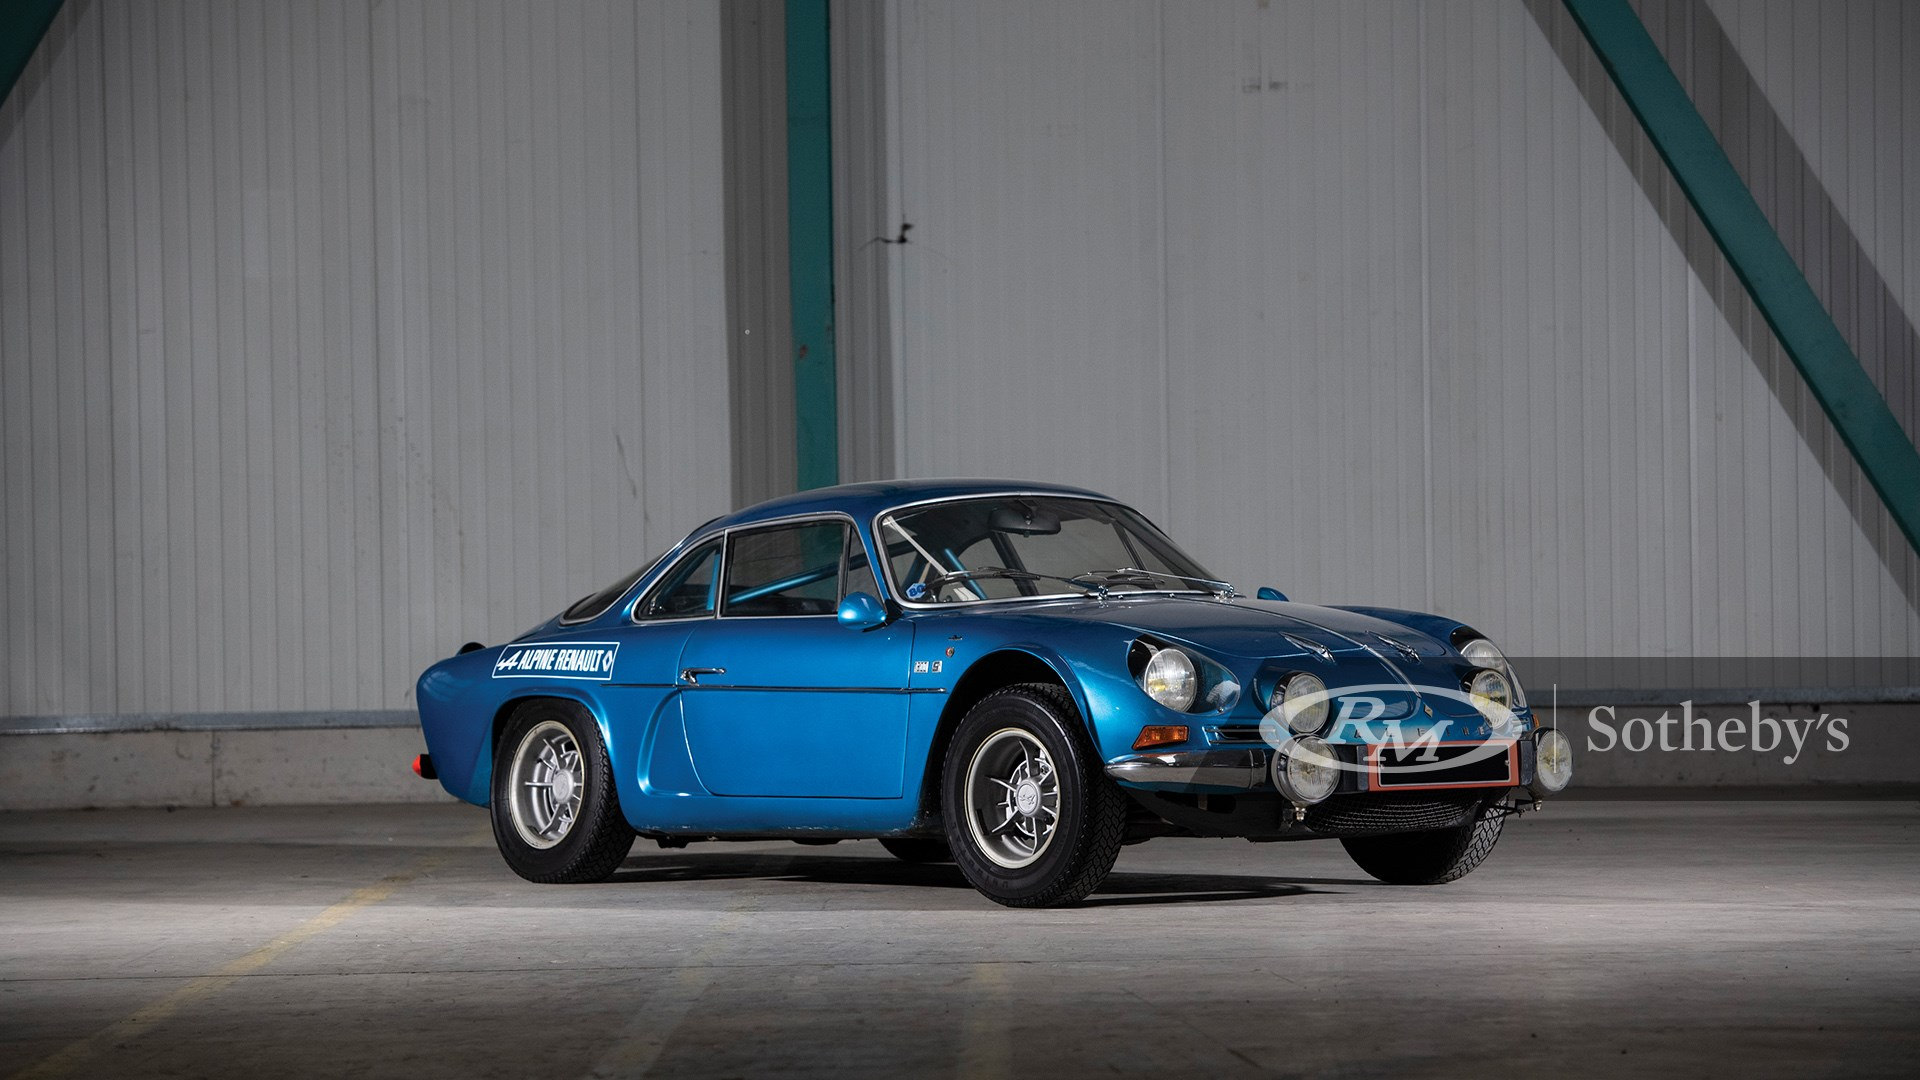 The European Sale Featuring The Petitjean Collection, 1971 Alpine-Renault A110 1600 S